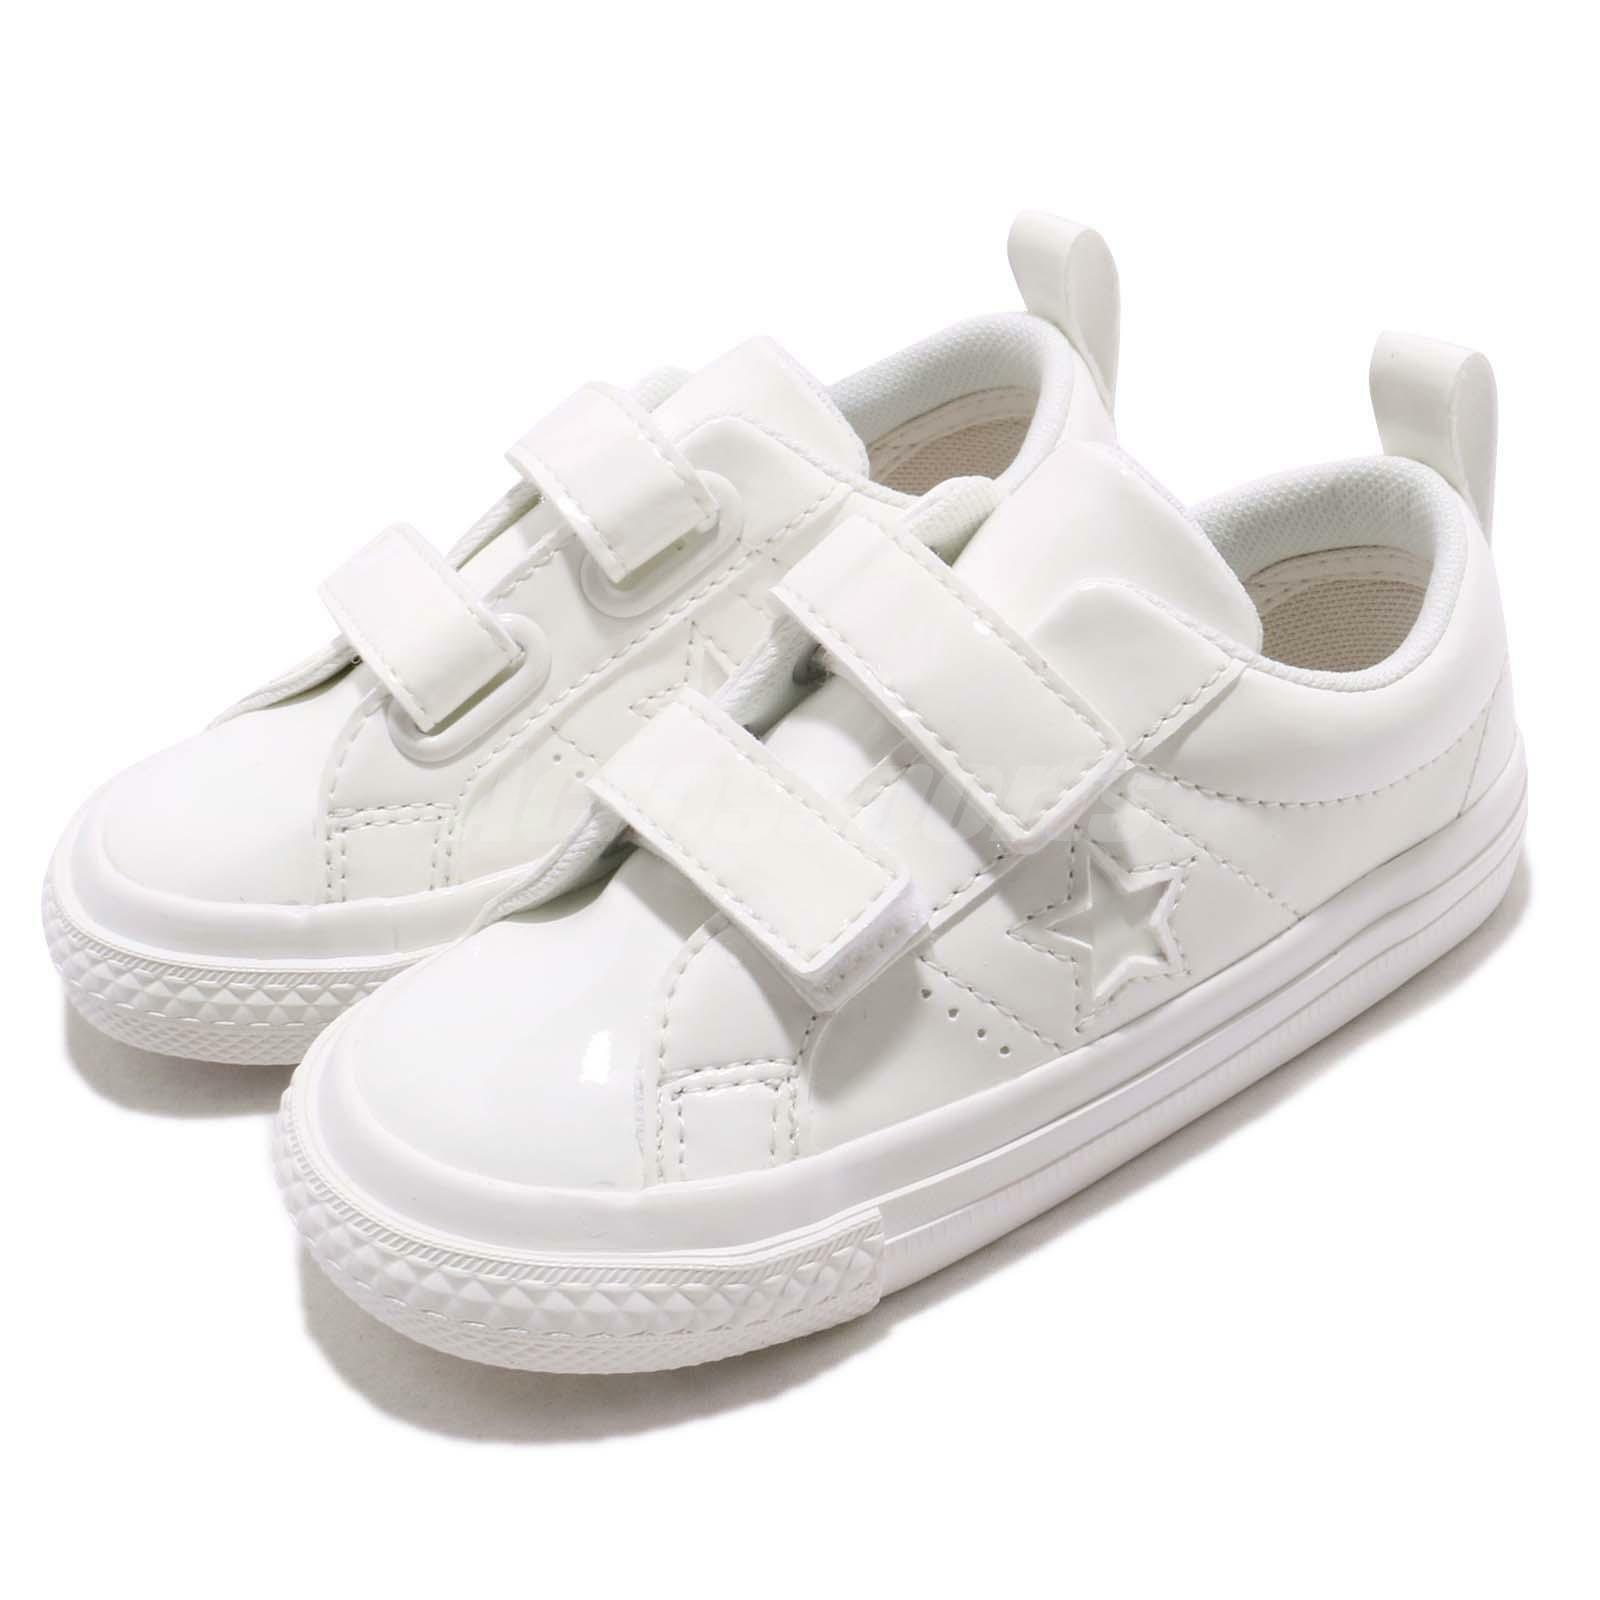 Converse One Star 2V Triple blanc Patent Leather TD Toddler Infant chaussures 762521C